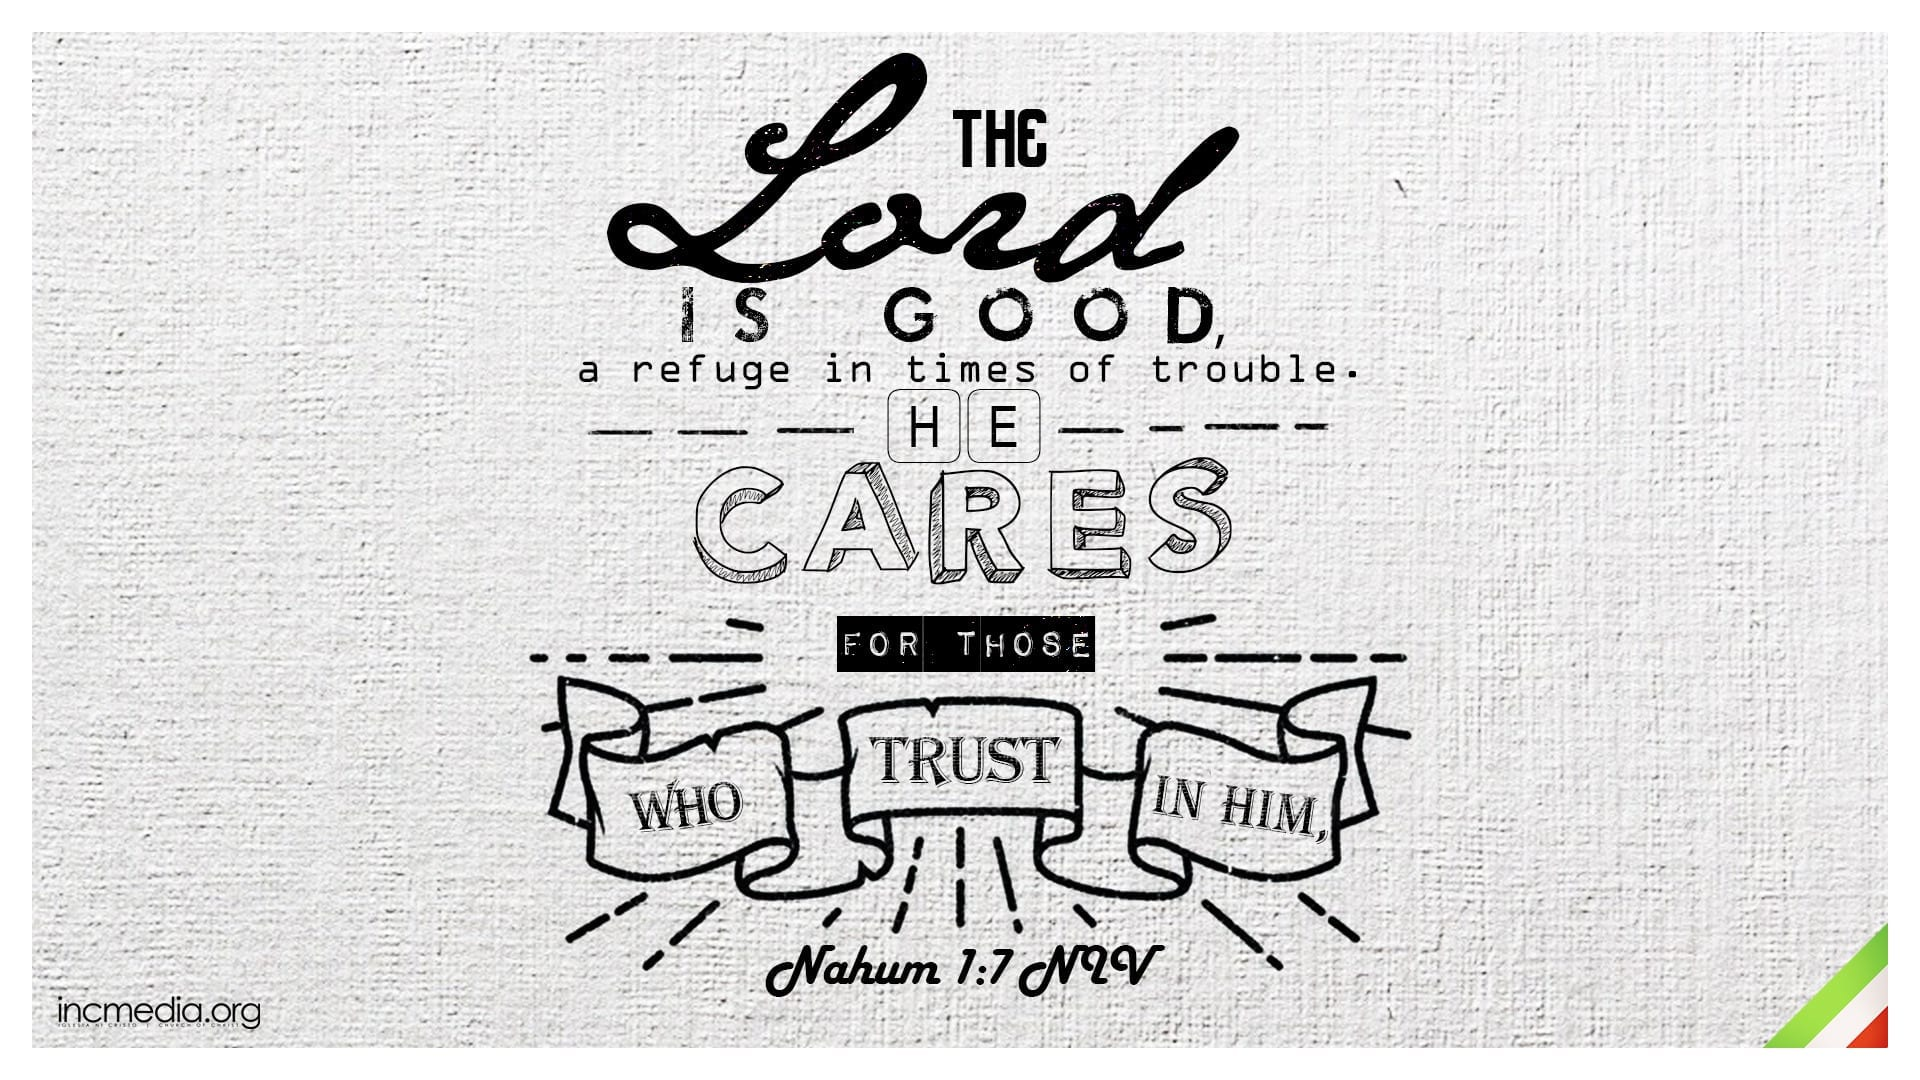 """Nahum 1:7 verse graphic """"The Lord is good, a refuge in times of trouble. He cares for those who trust in Him."""""""